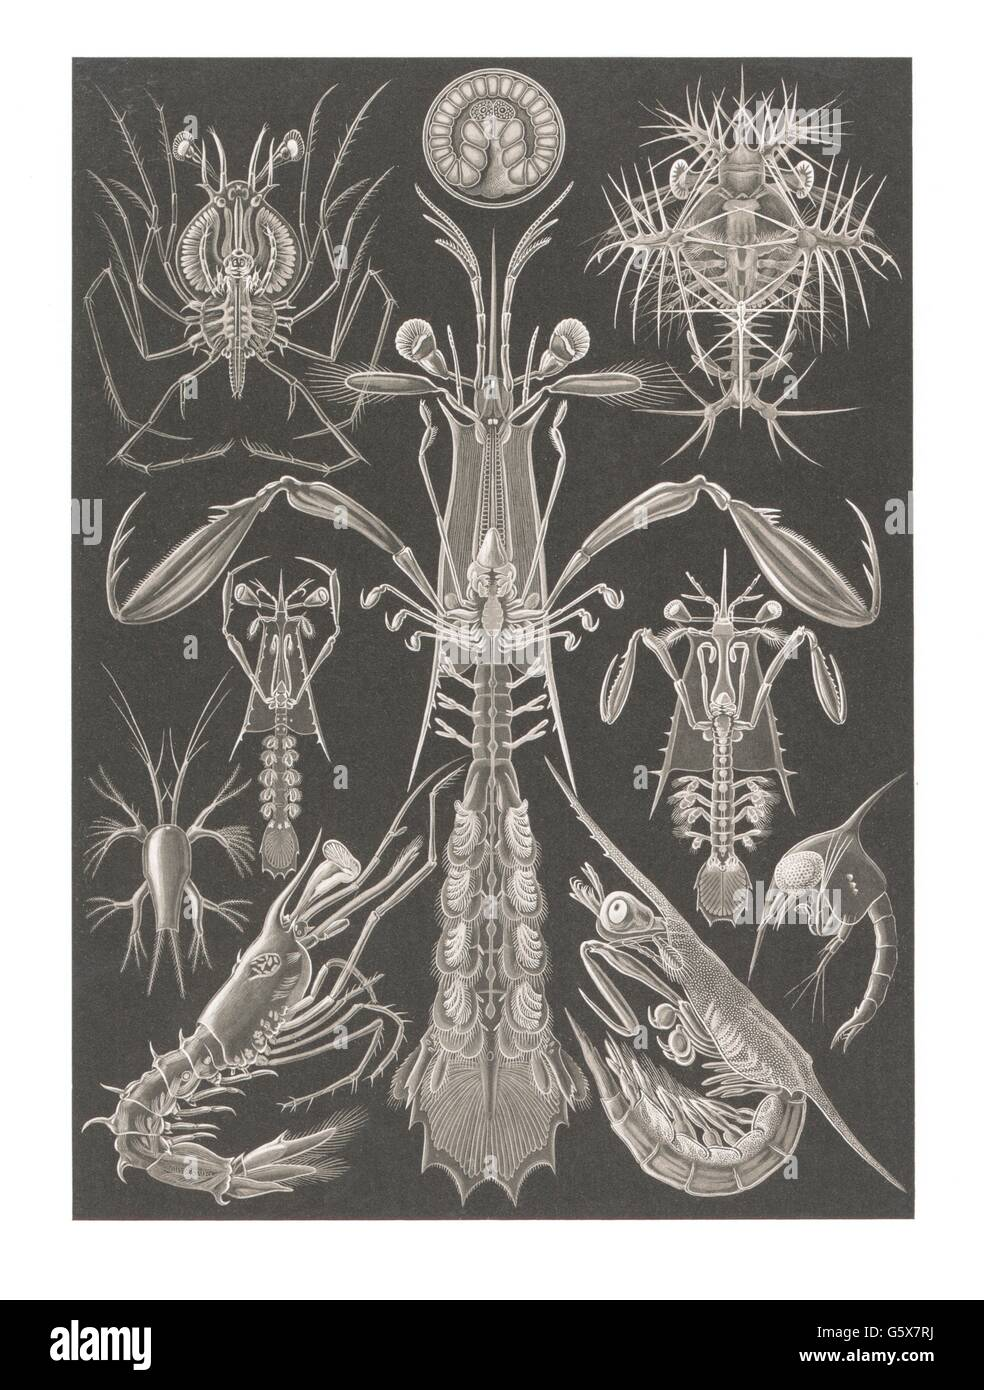 zoology / animals, crustacea, stalk-eyed crustaceans (Thoracostraca), colour lithograph, out of: Ernst Haeckel, - Stock Image